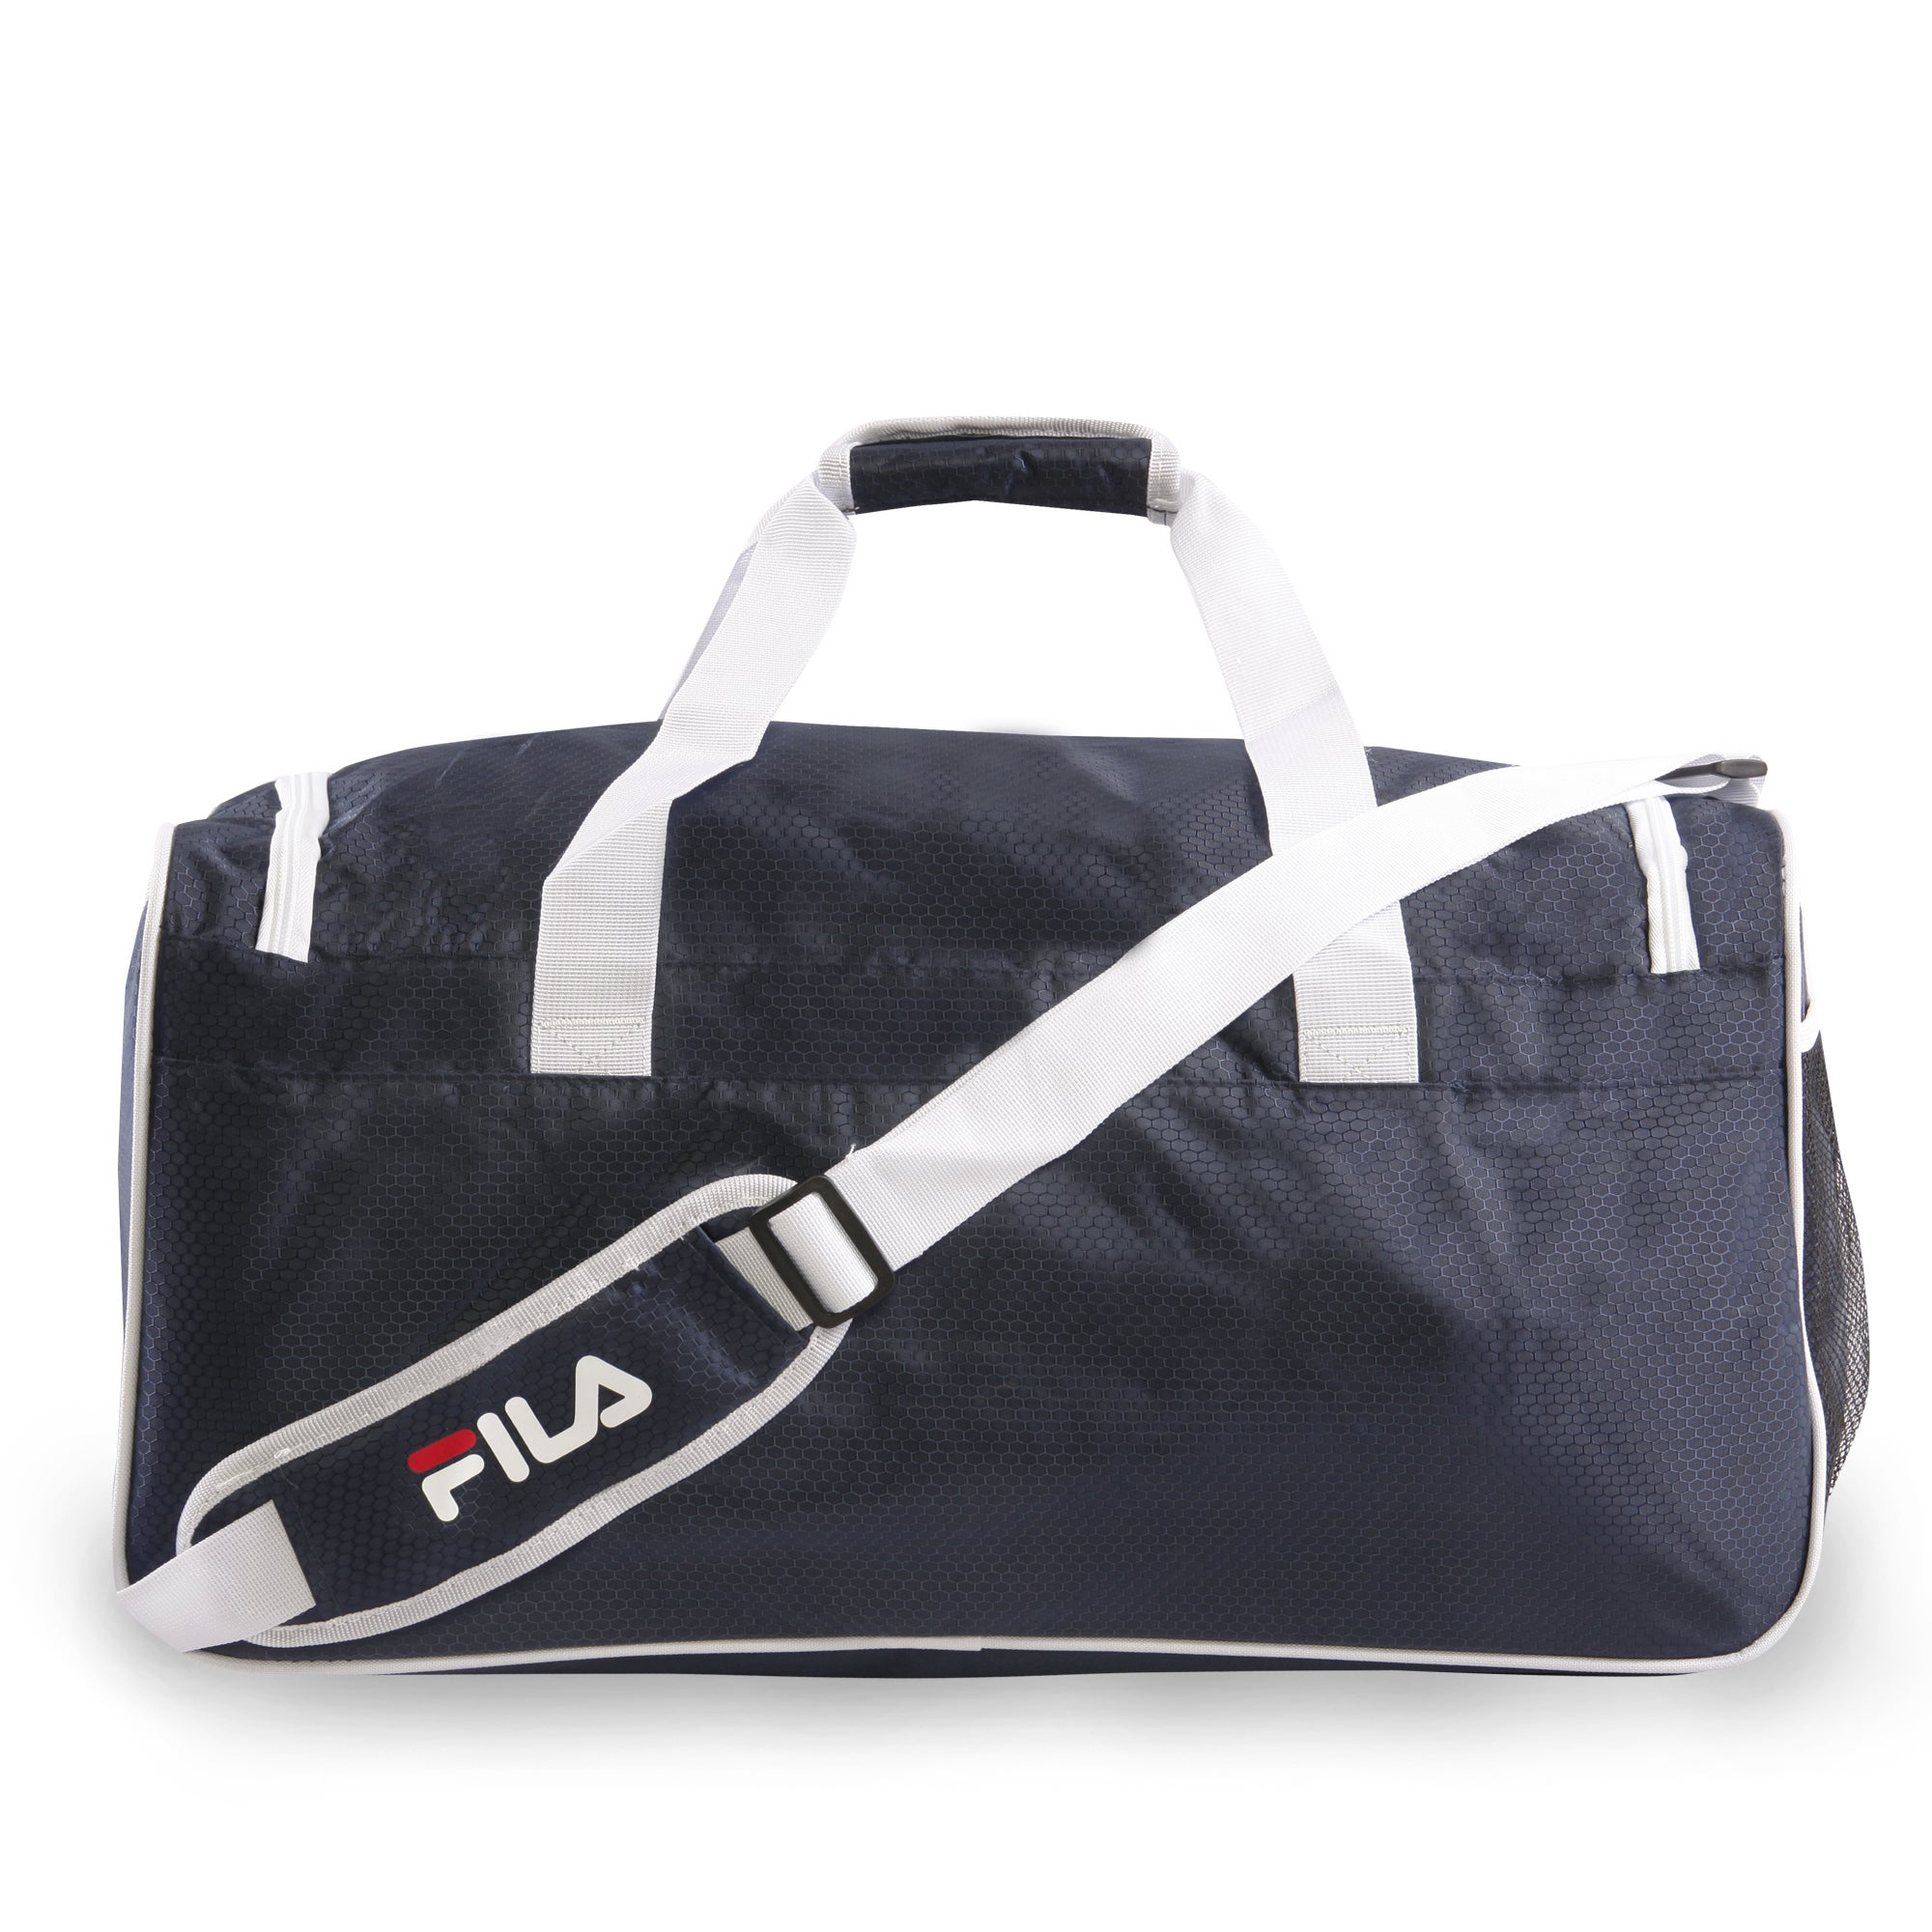 Shop Fila Baywood Medium Sports Duffel Bag - Free Shipping On Orders Over   45 - Overstock - 18544238 fad5f1472dbcf